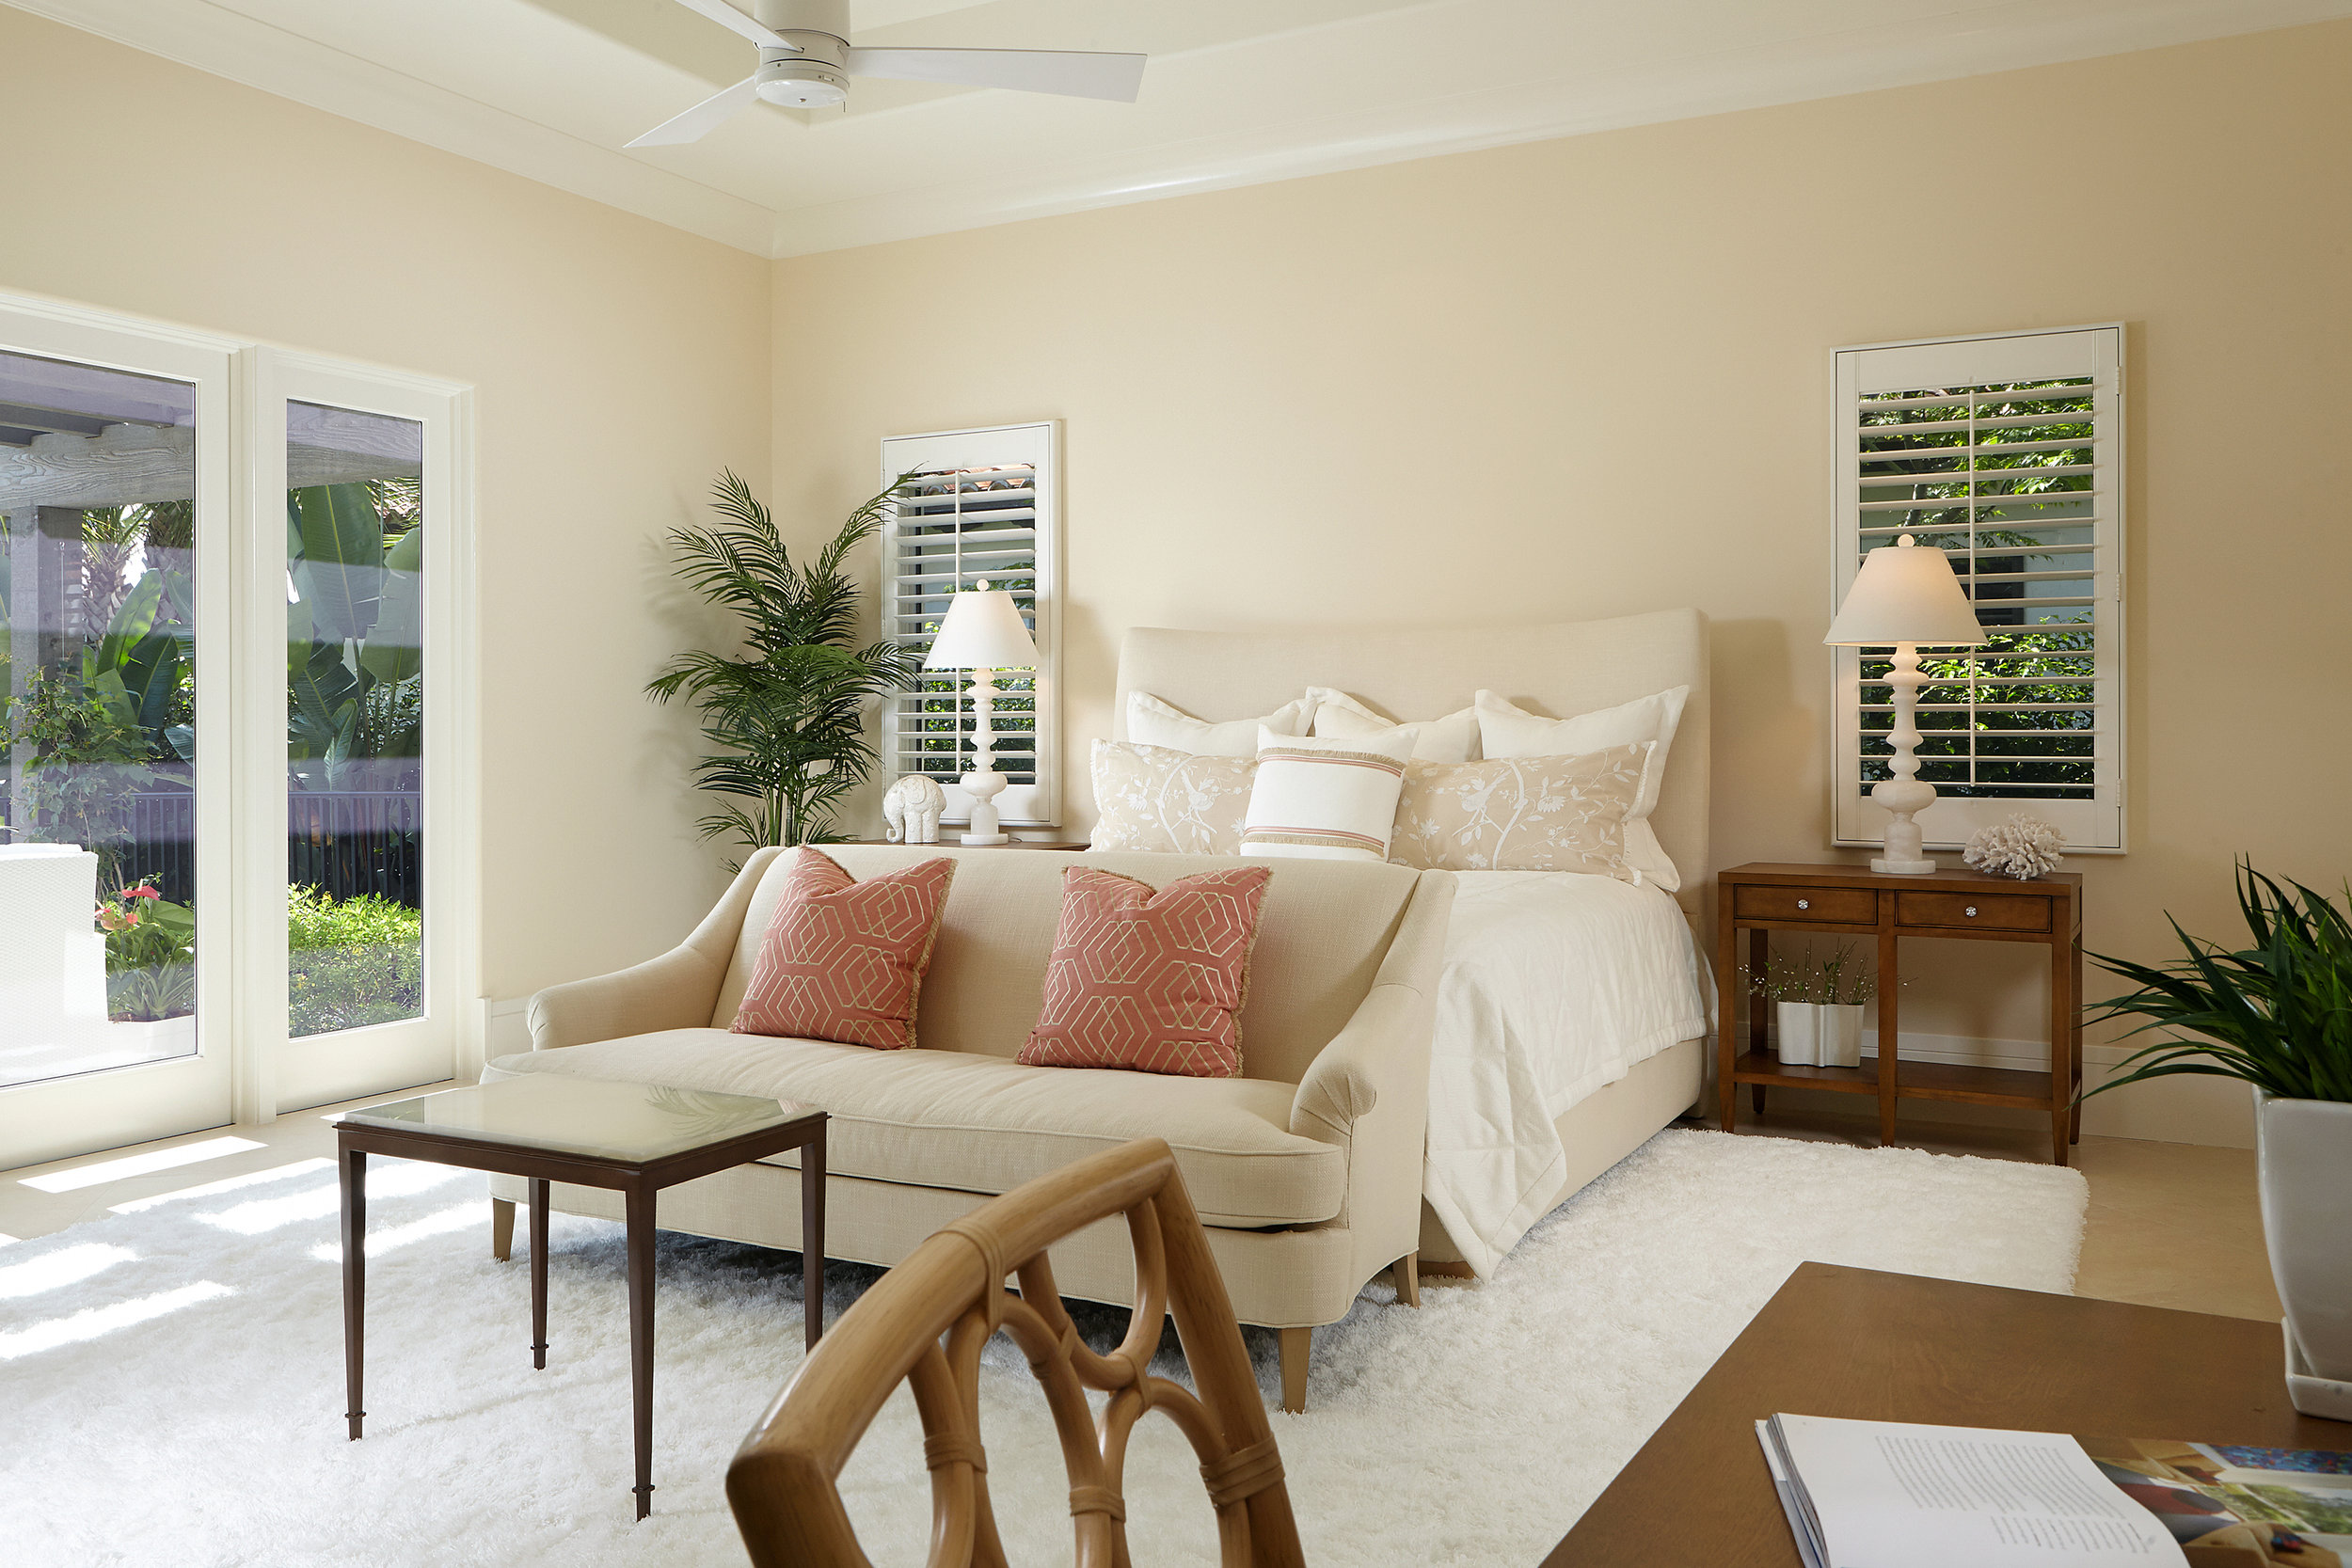 TROPICAL_RETREAT_MASTER_BEDROOM_1.jpg